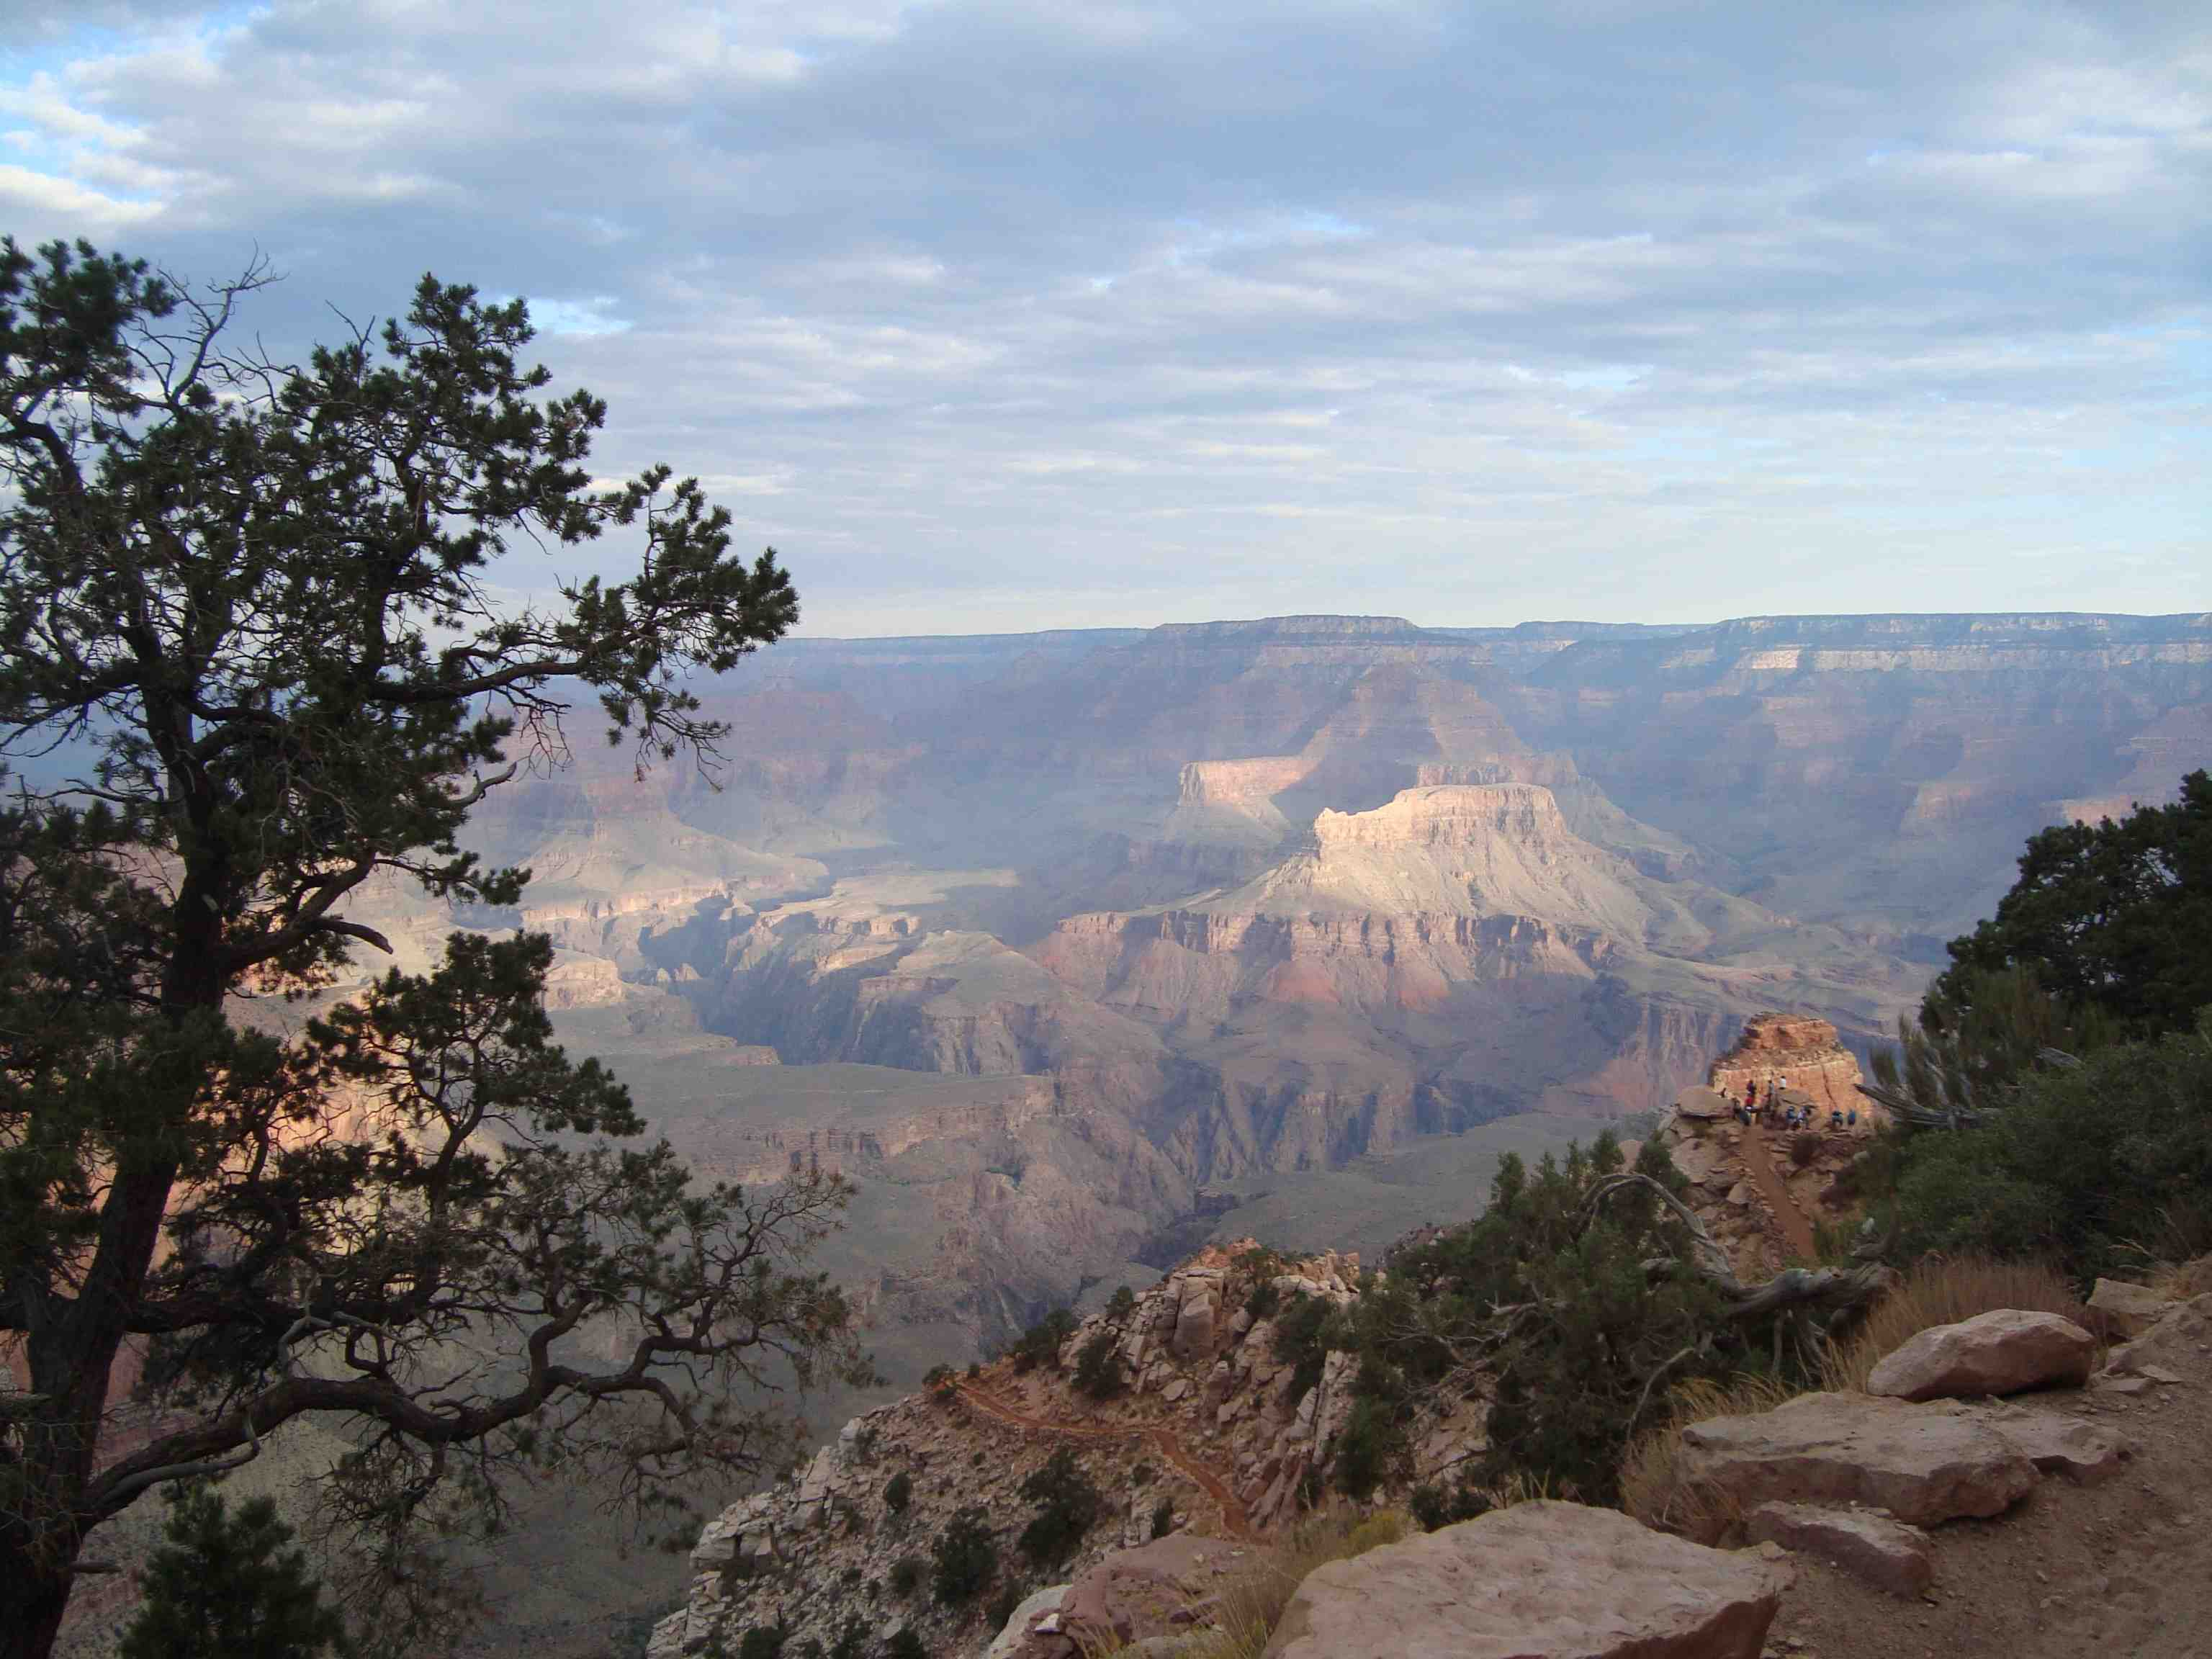 A picture taken looking across the Grand Canyon